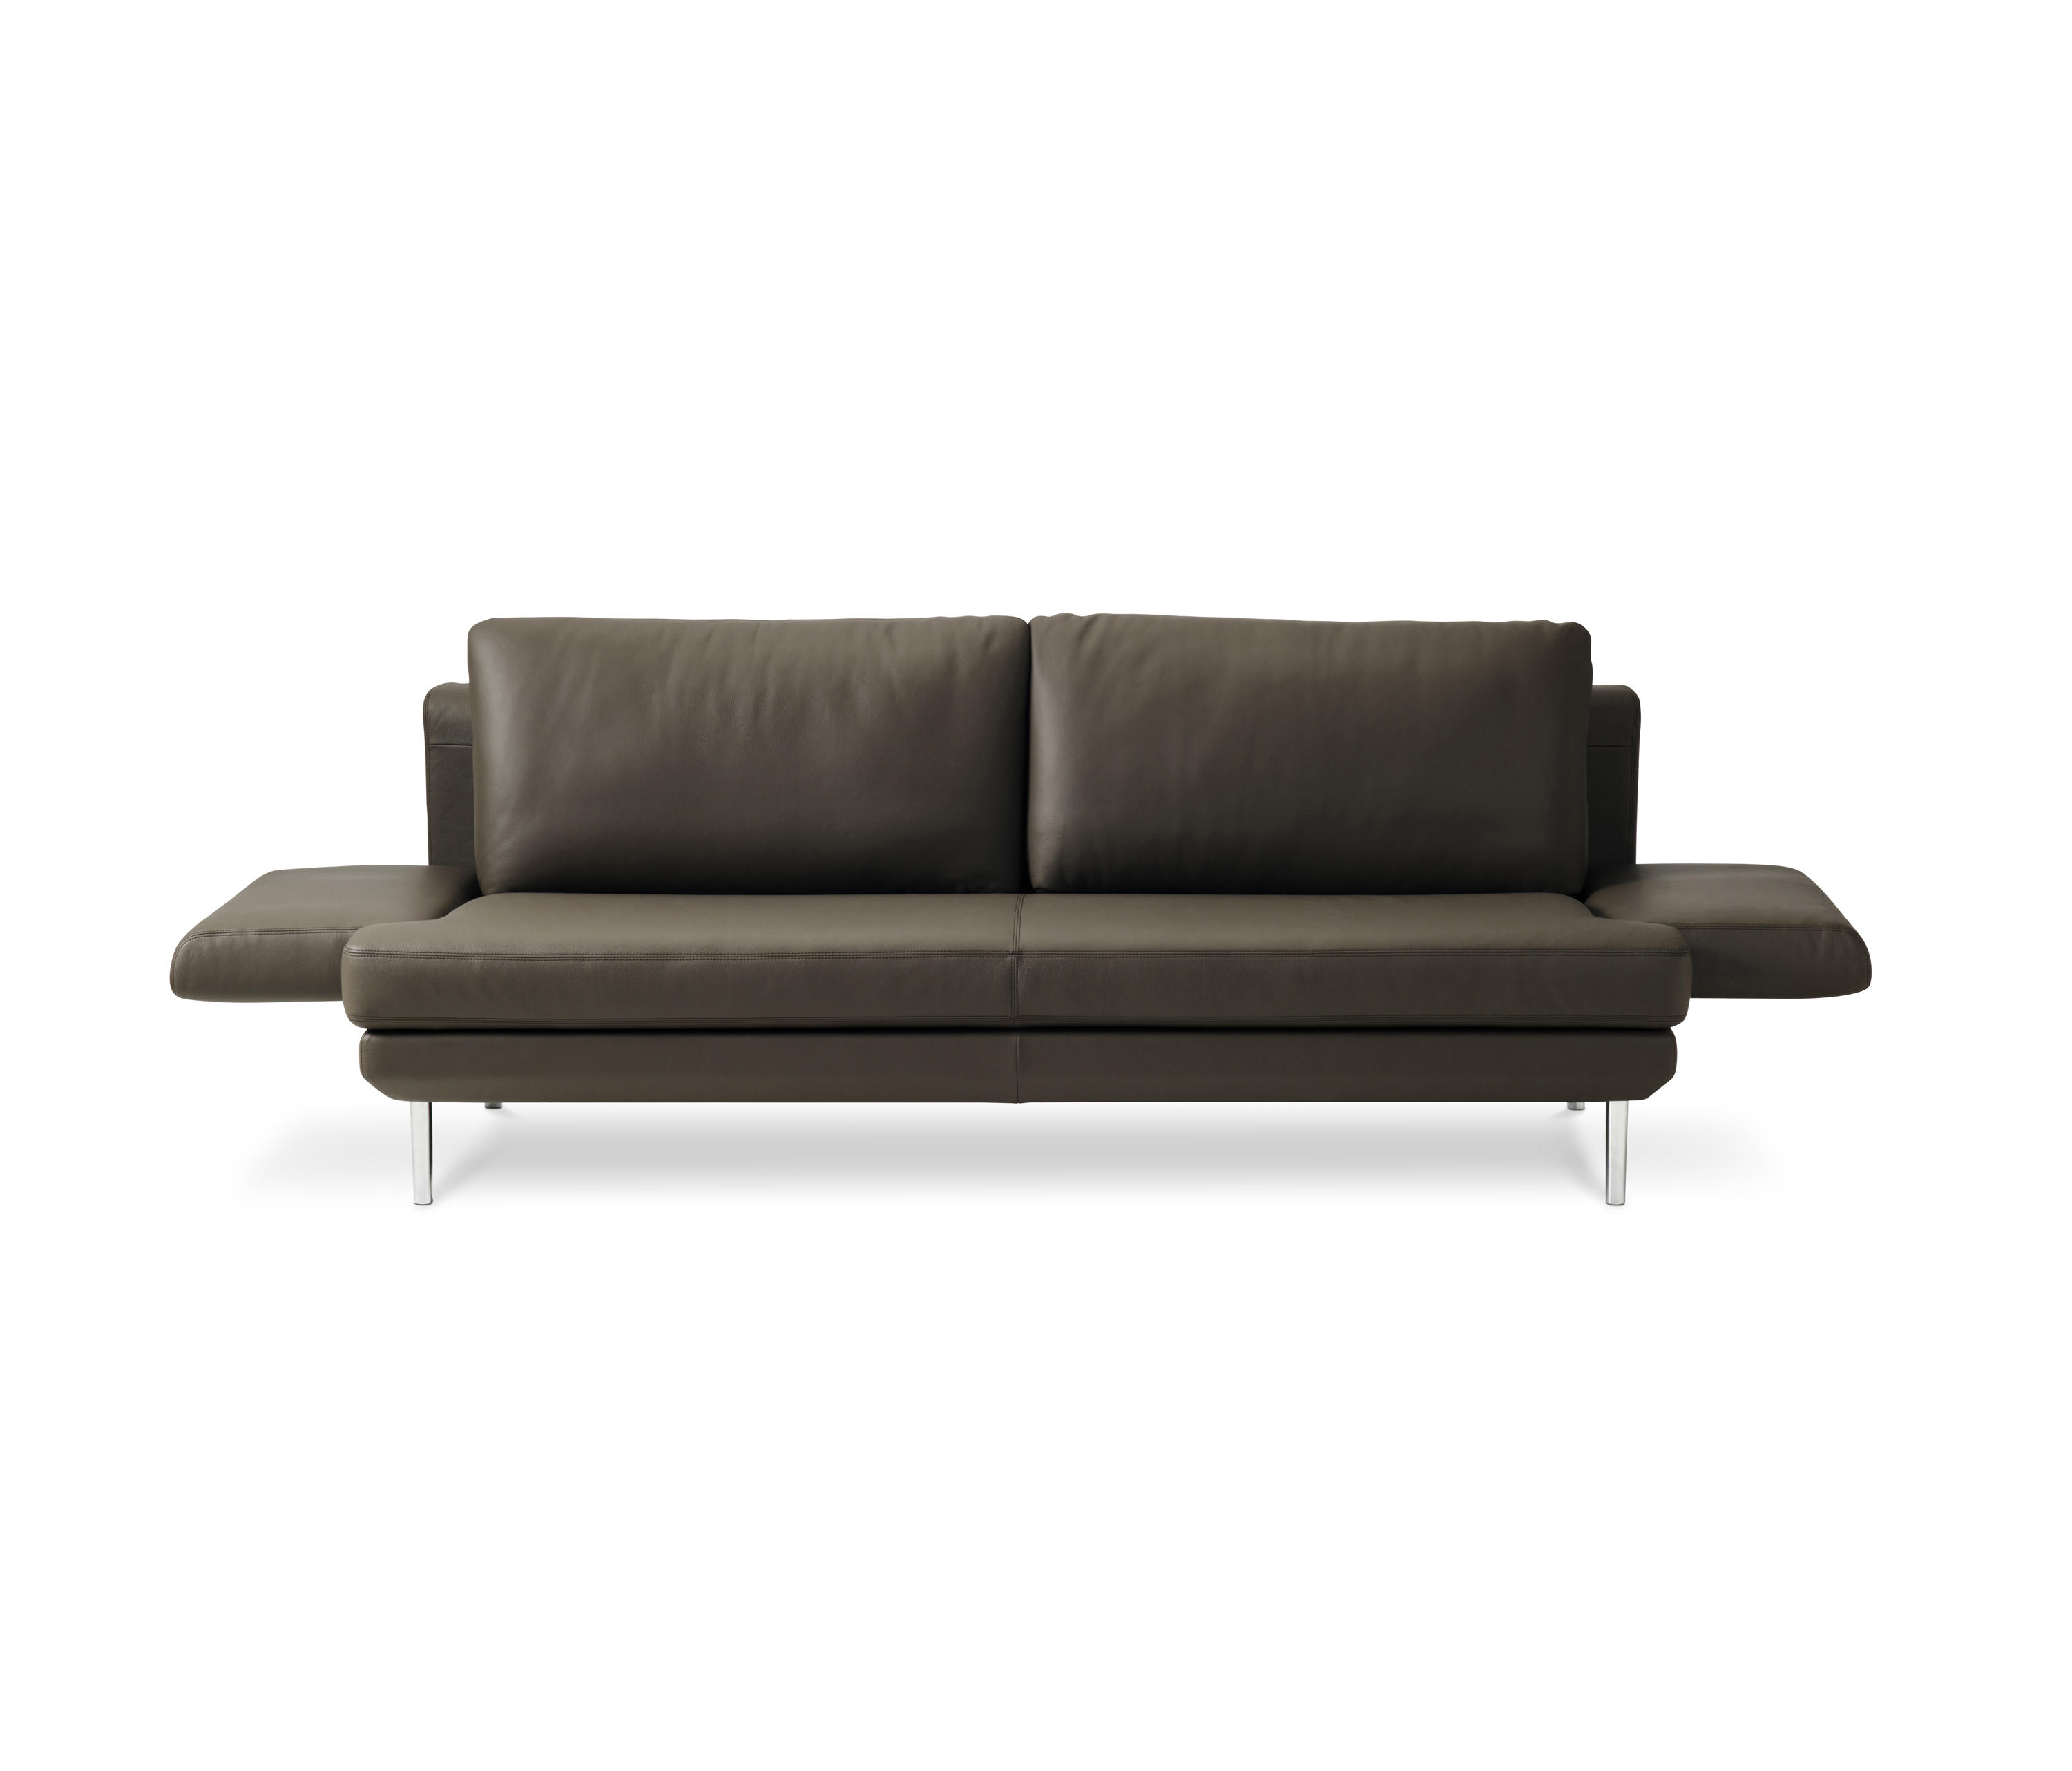 Rolf Benz Eckcouch 1191 Liv Sofas From Intertime Architonic